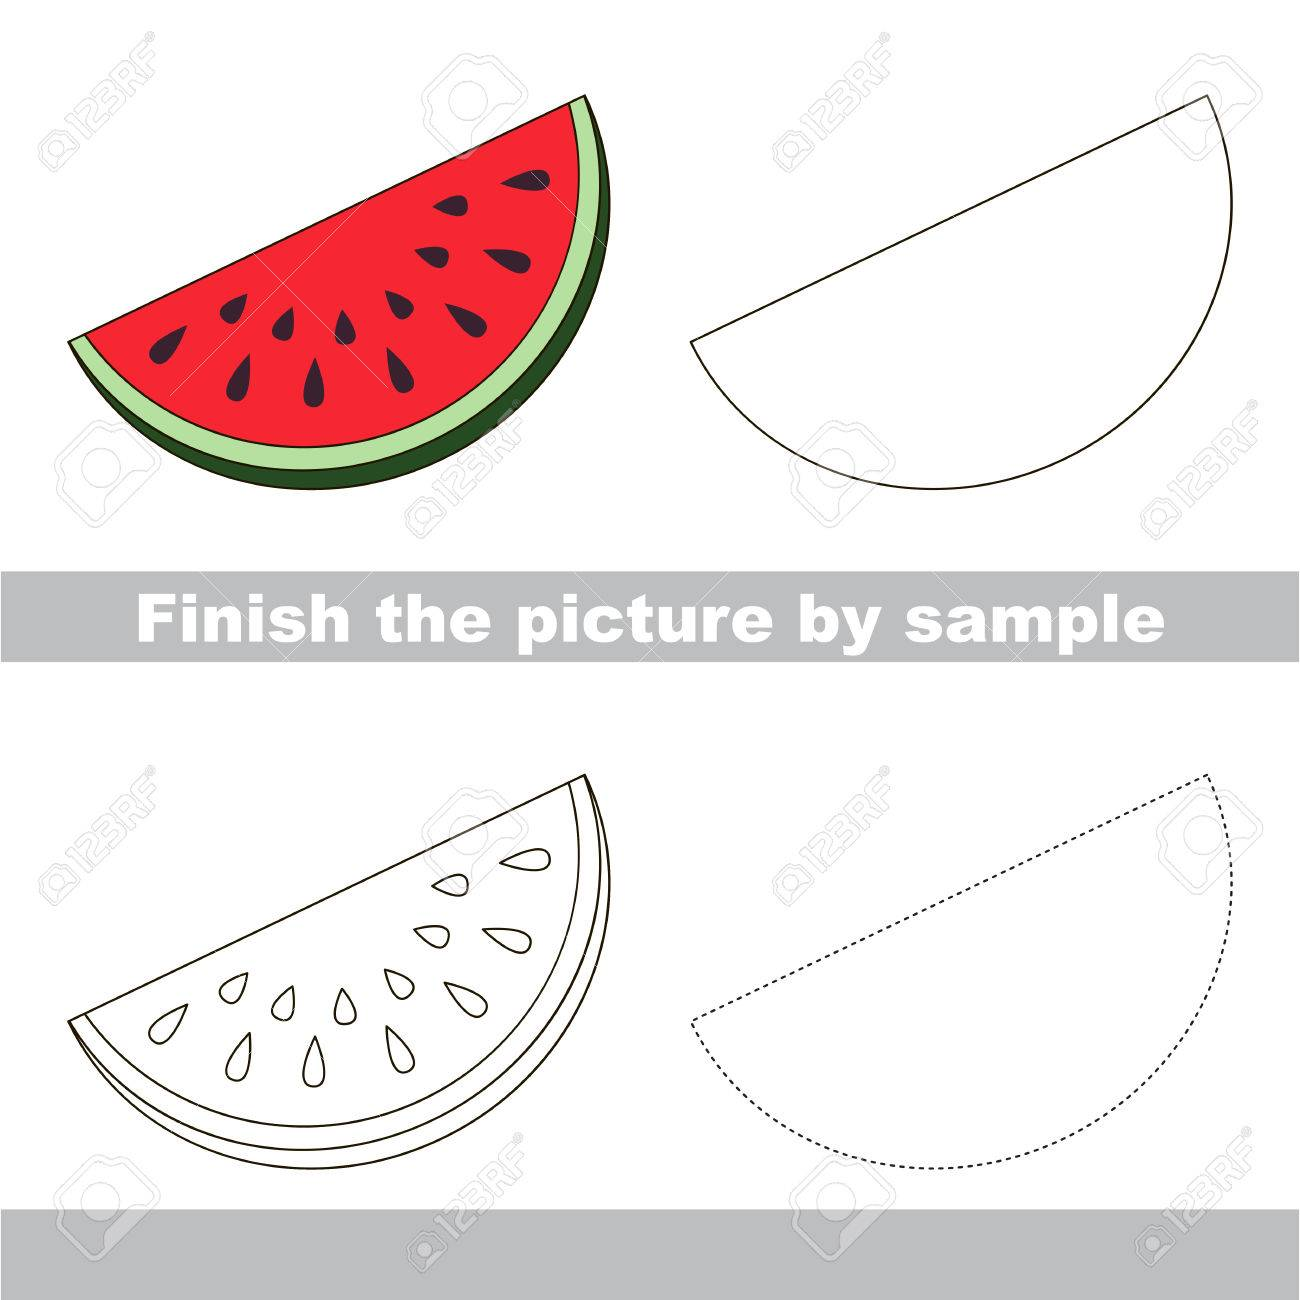 Drawing worksheet for children finish the picture and draw the cute slice of watermelon stock